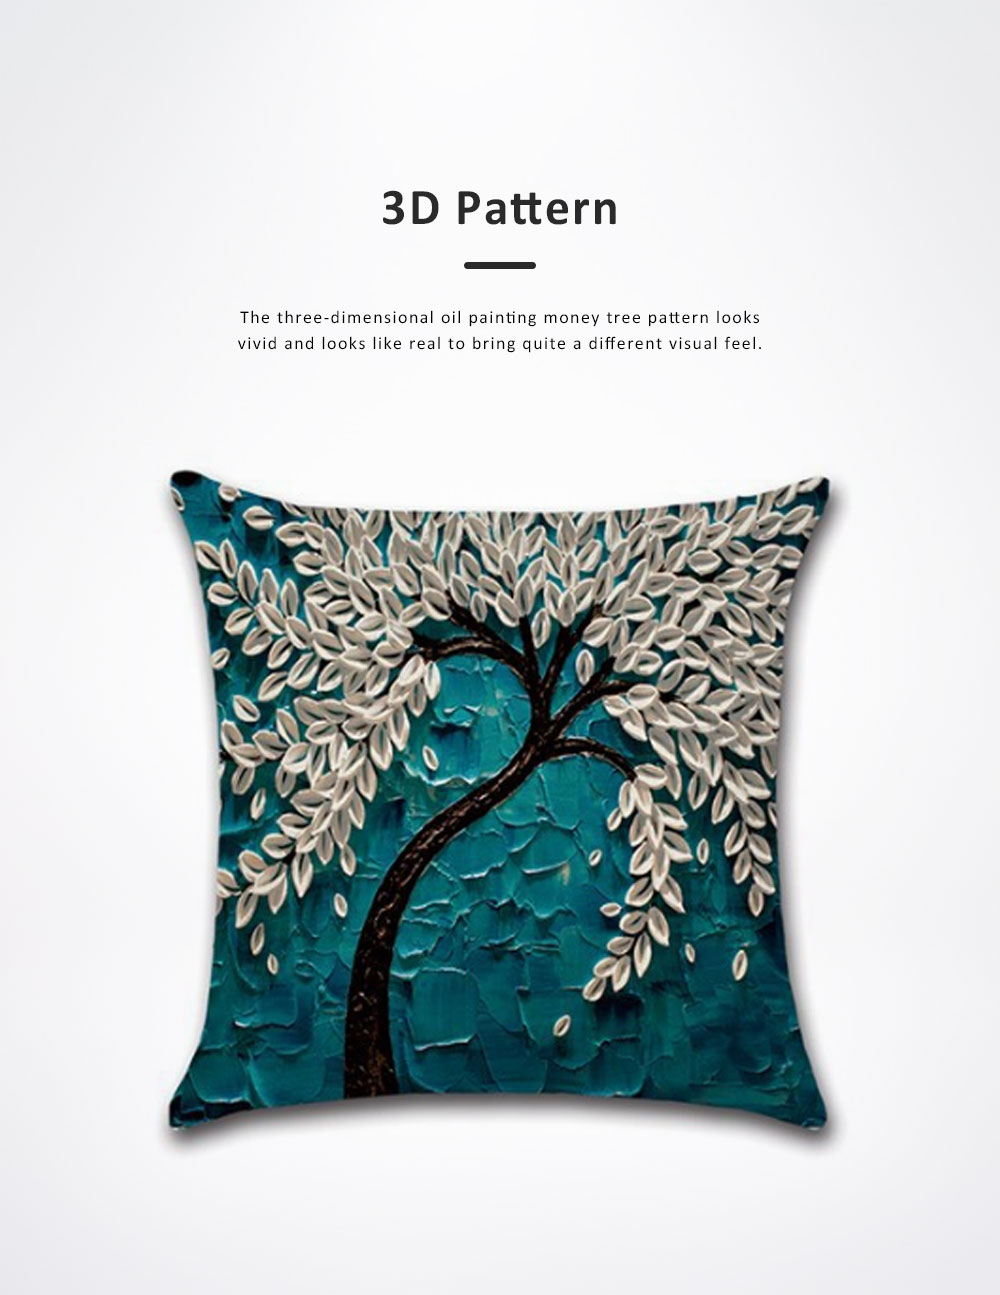 Pillowcase for Car, Office, Sofa, Back Cushion Case with Three-Dimensional Oil Painting Pachira Macrocarpa Flower, Tree Pattern Linen Back Cushion Cover 4